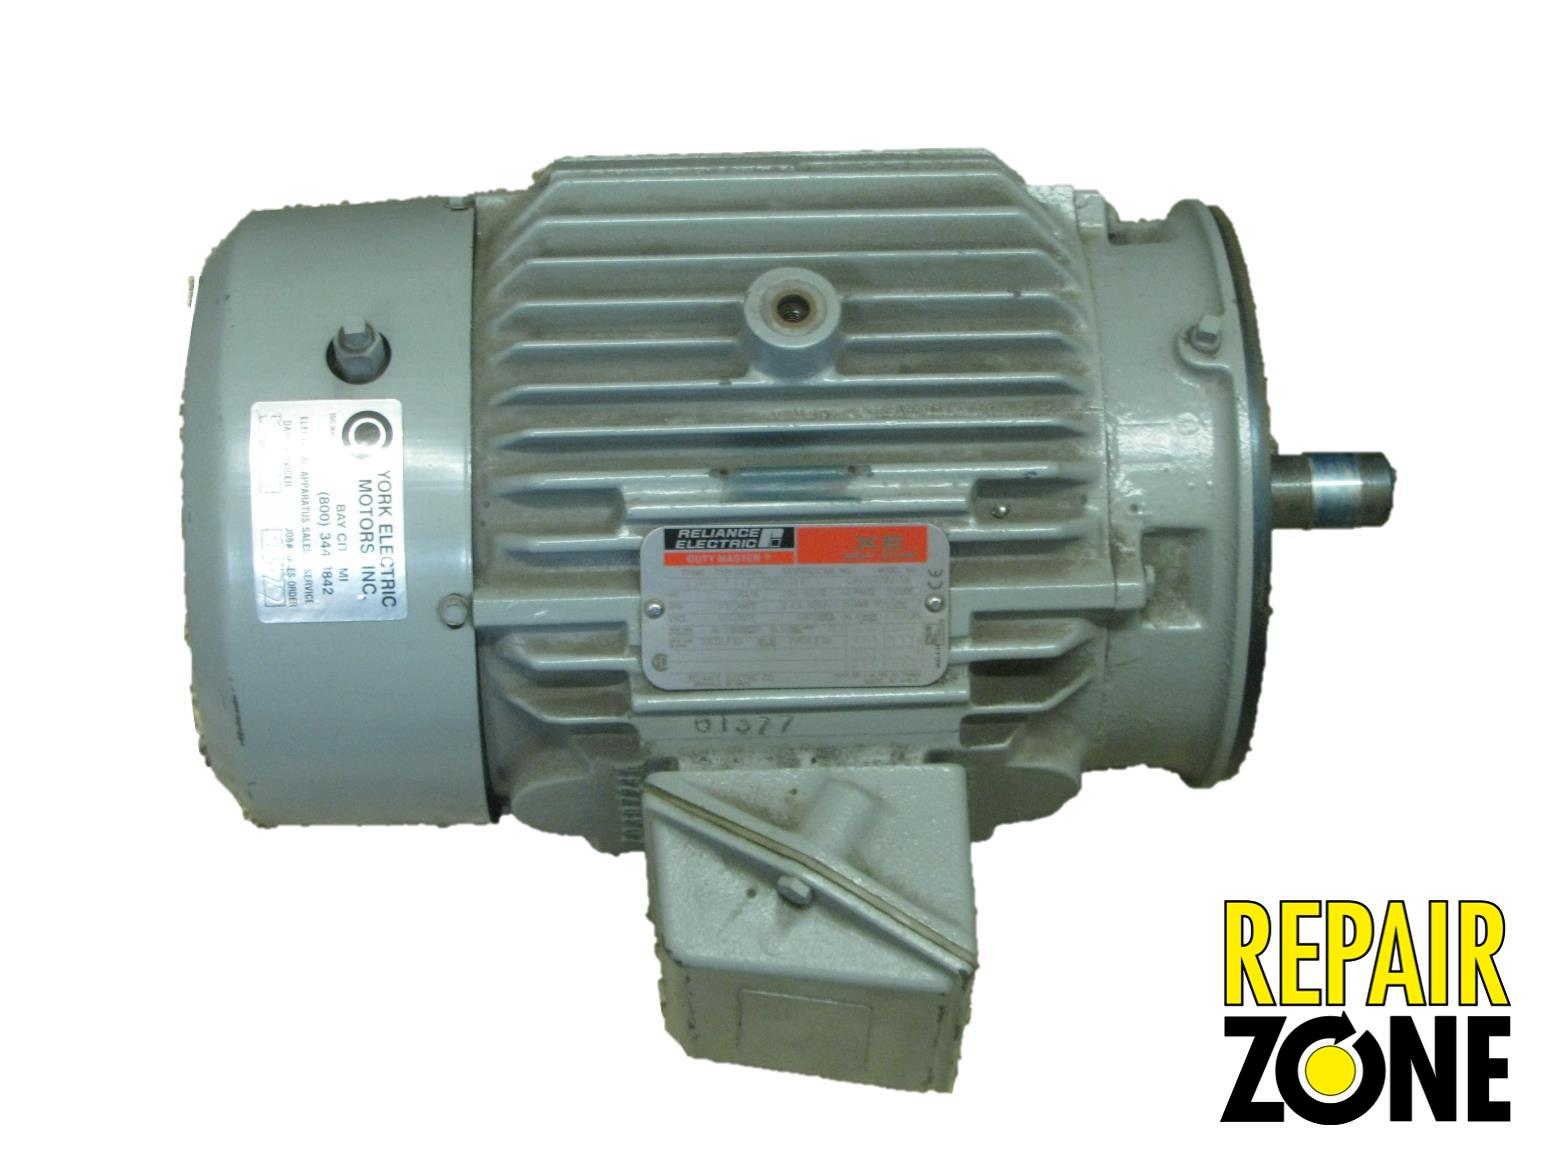 P18g1133d reliance three phase motors remanufactured ebay for 3 phase motor troubleshooting